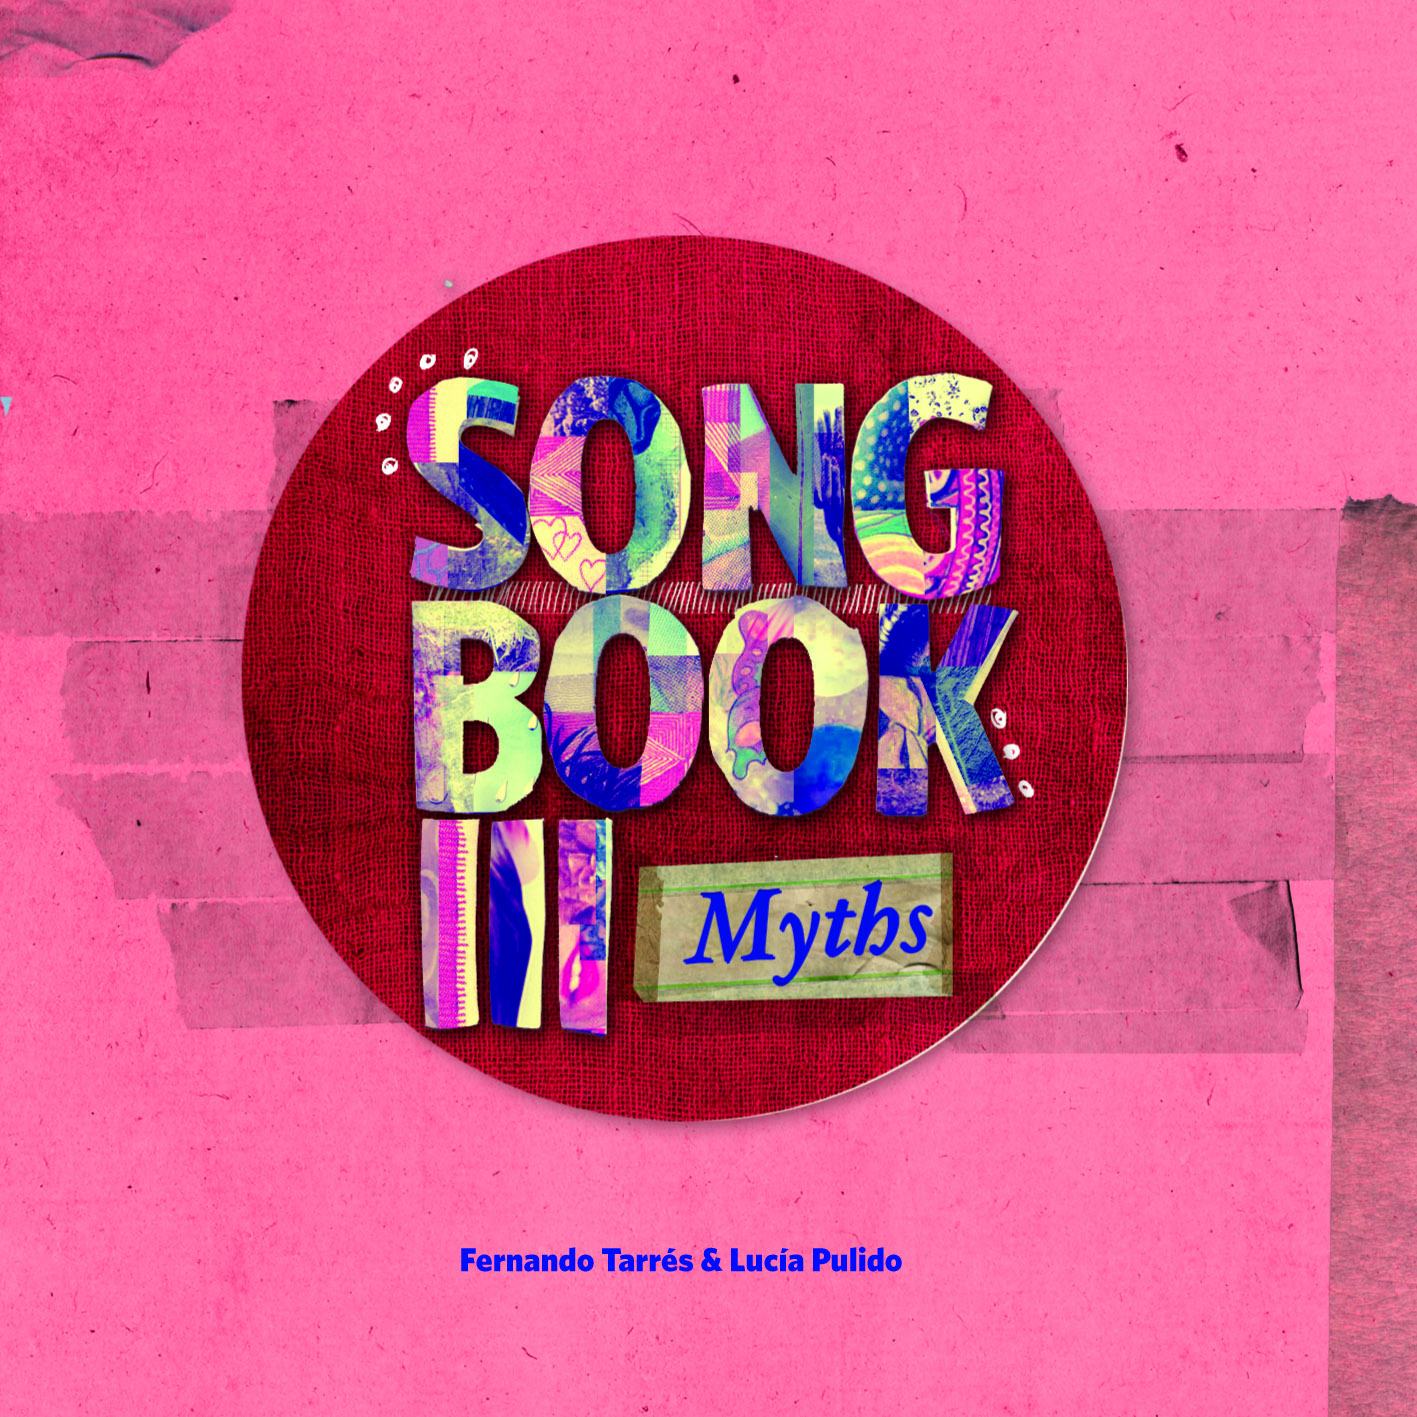 Songbook III Myths